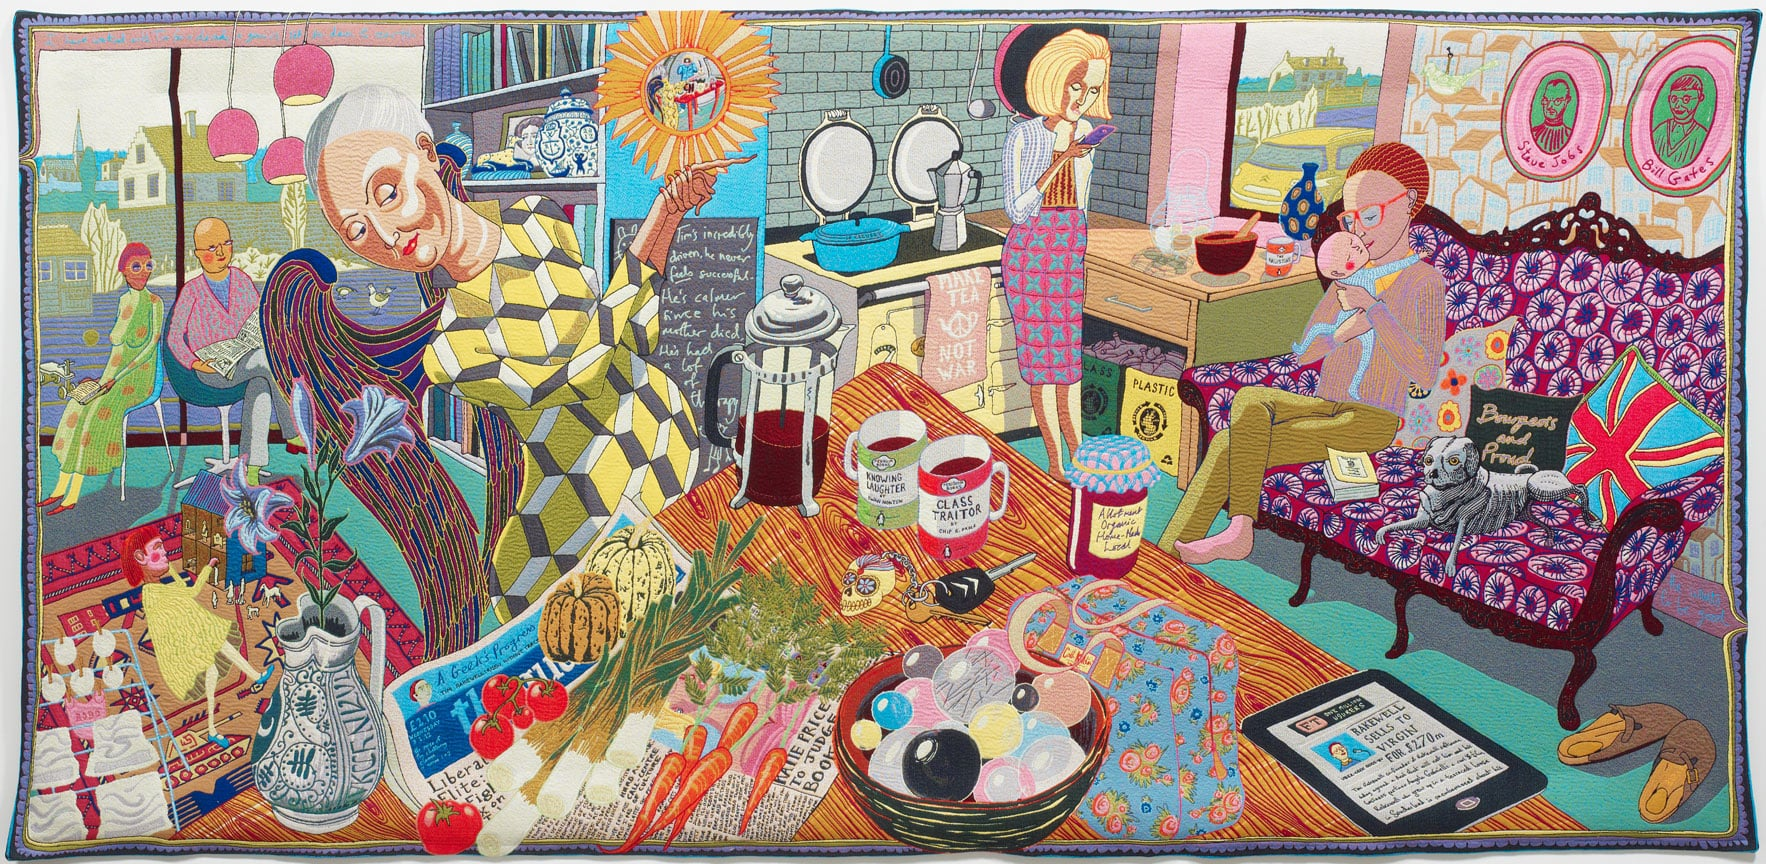 Grayson Perry The Annunciation of the Virgin Deal, 2012